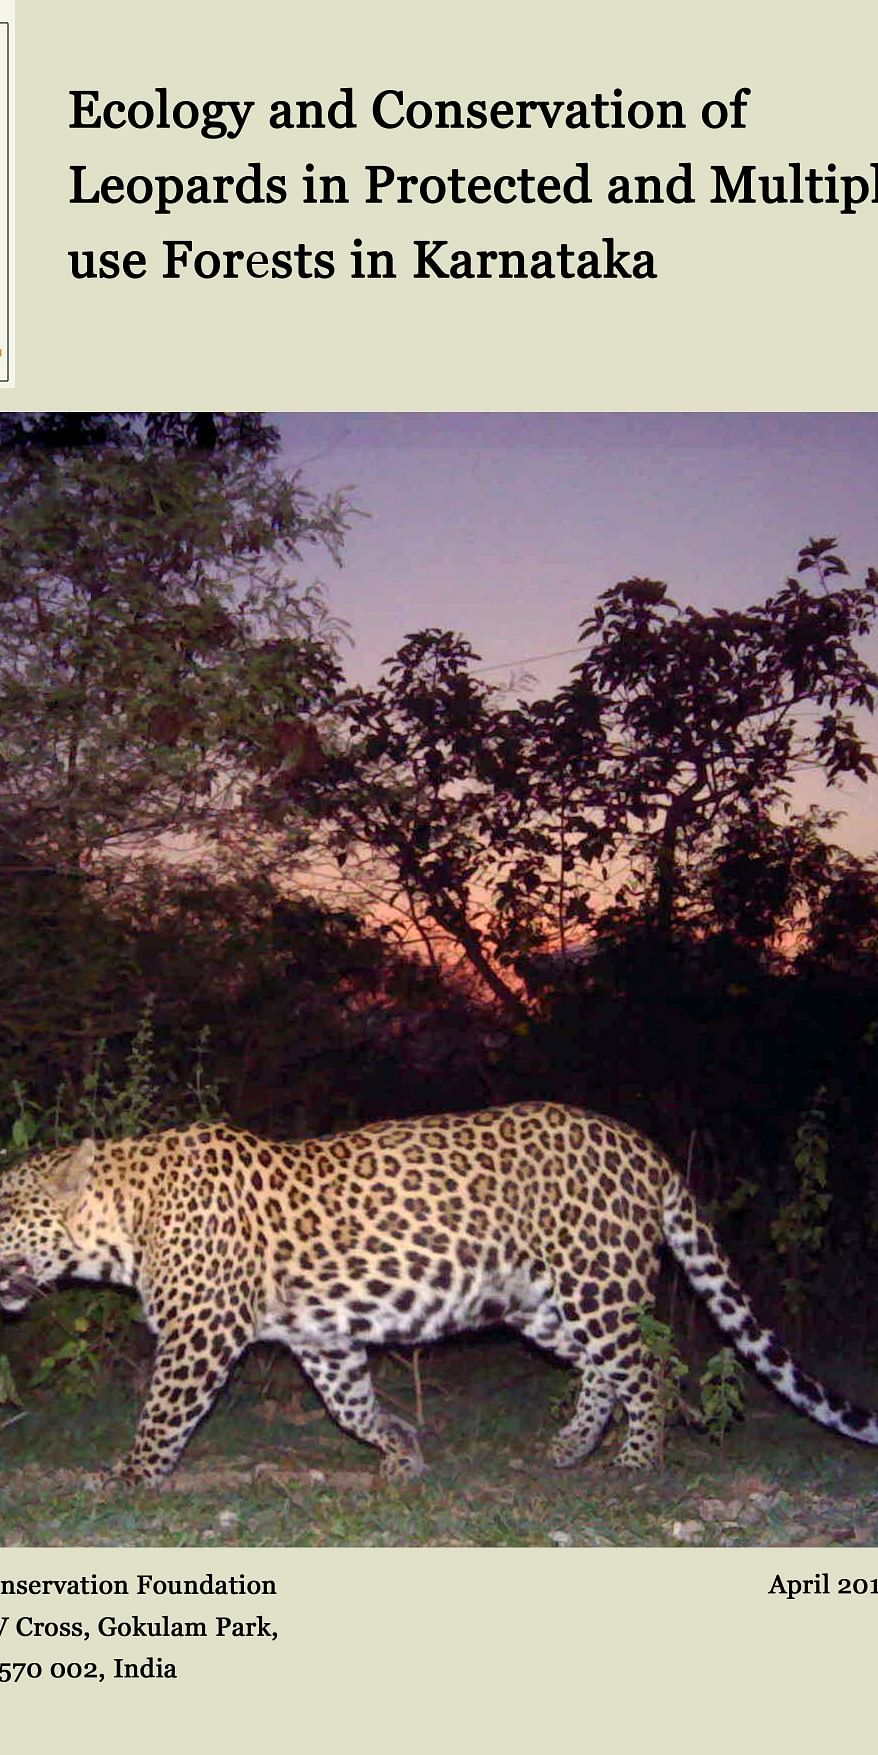 Ecology and conservation of leopards in protected and multiple use forests in Karnataka